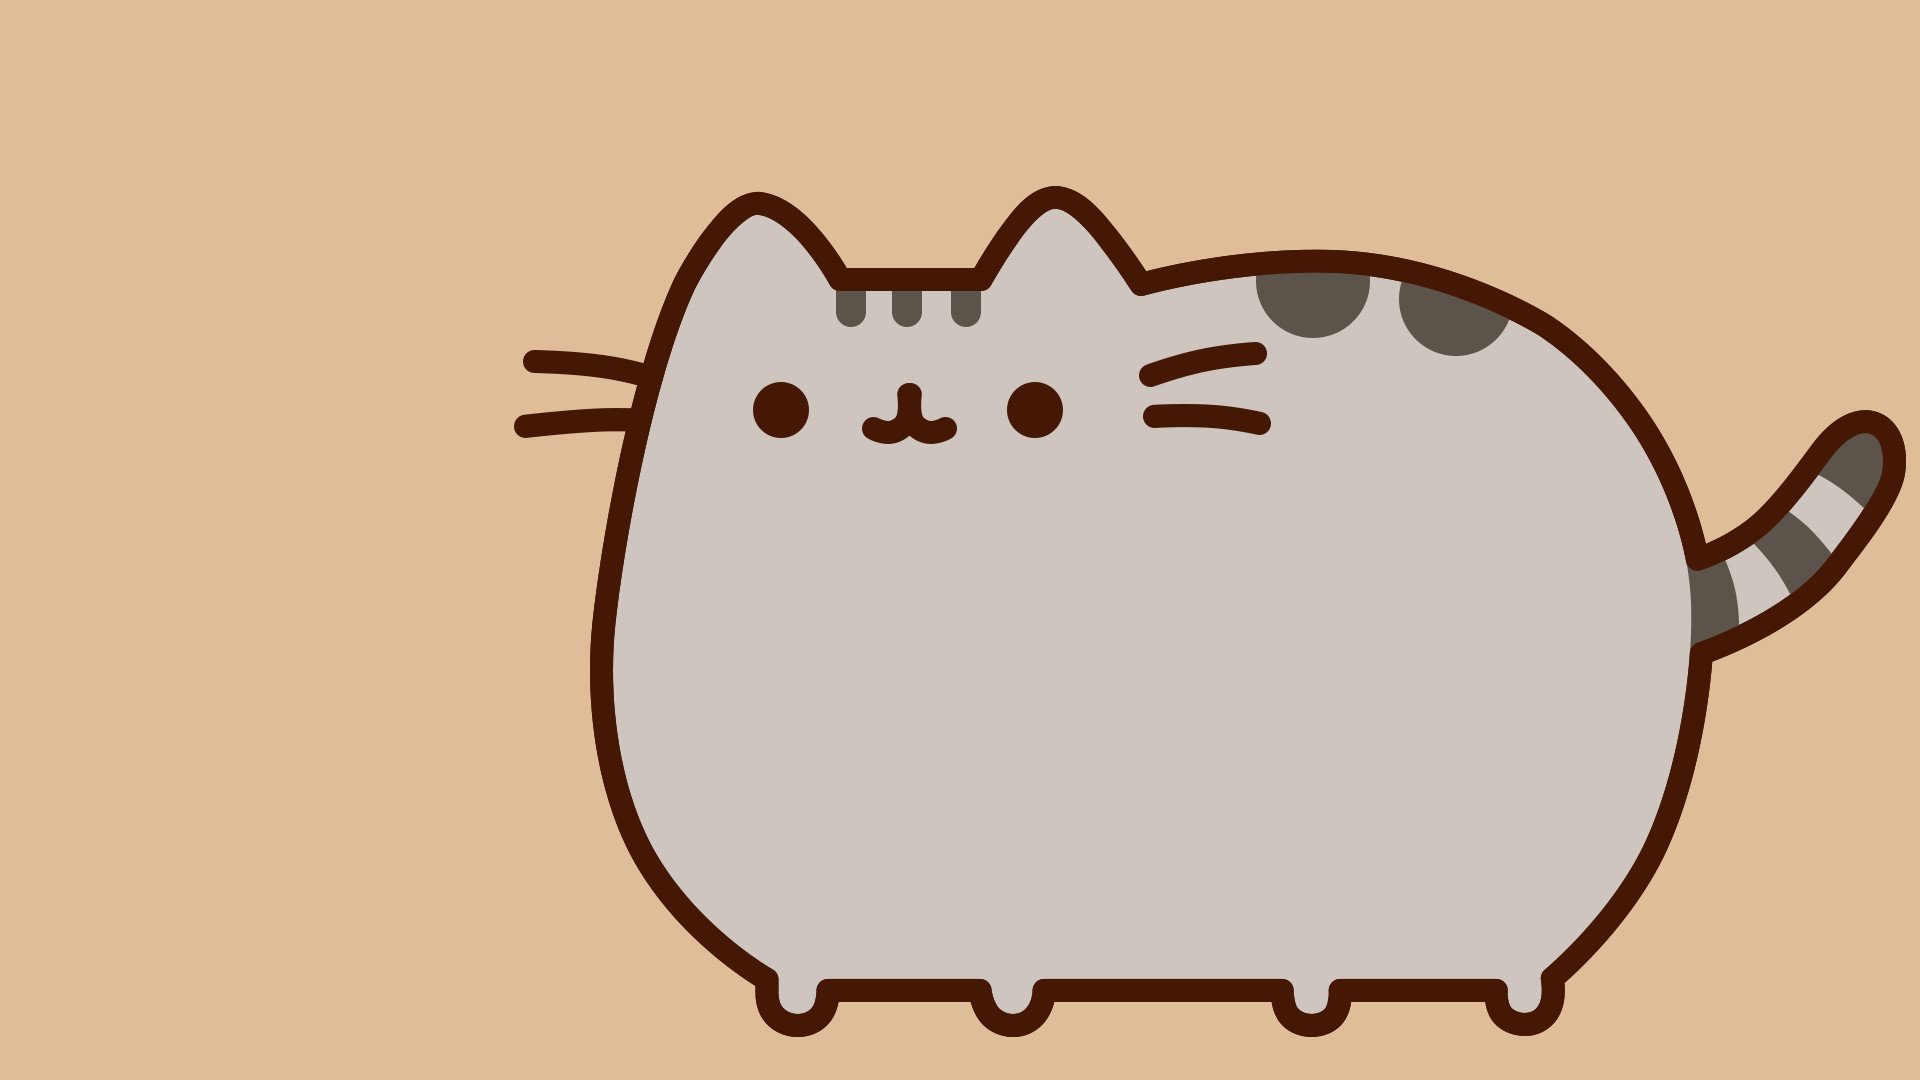 1920x1080 Pusheen cat wallpaper | Pusheen | Pinterest | S5 wallpaper, Taps .